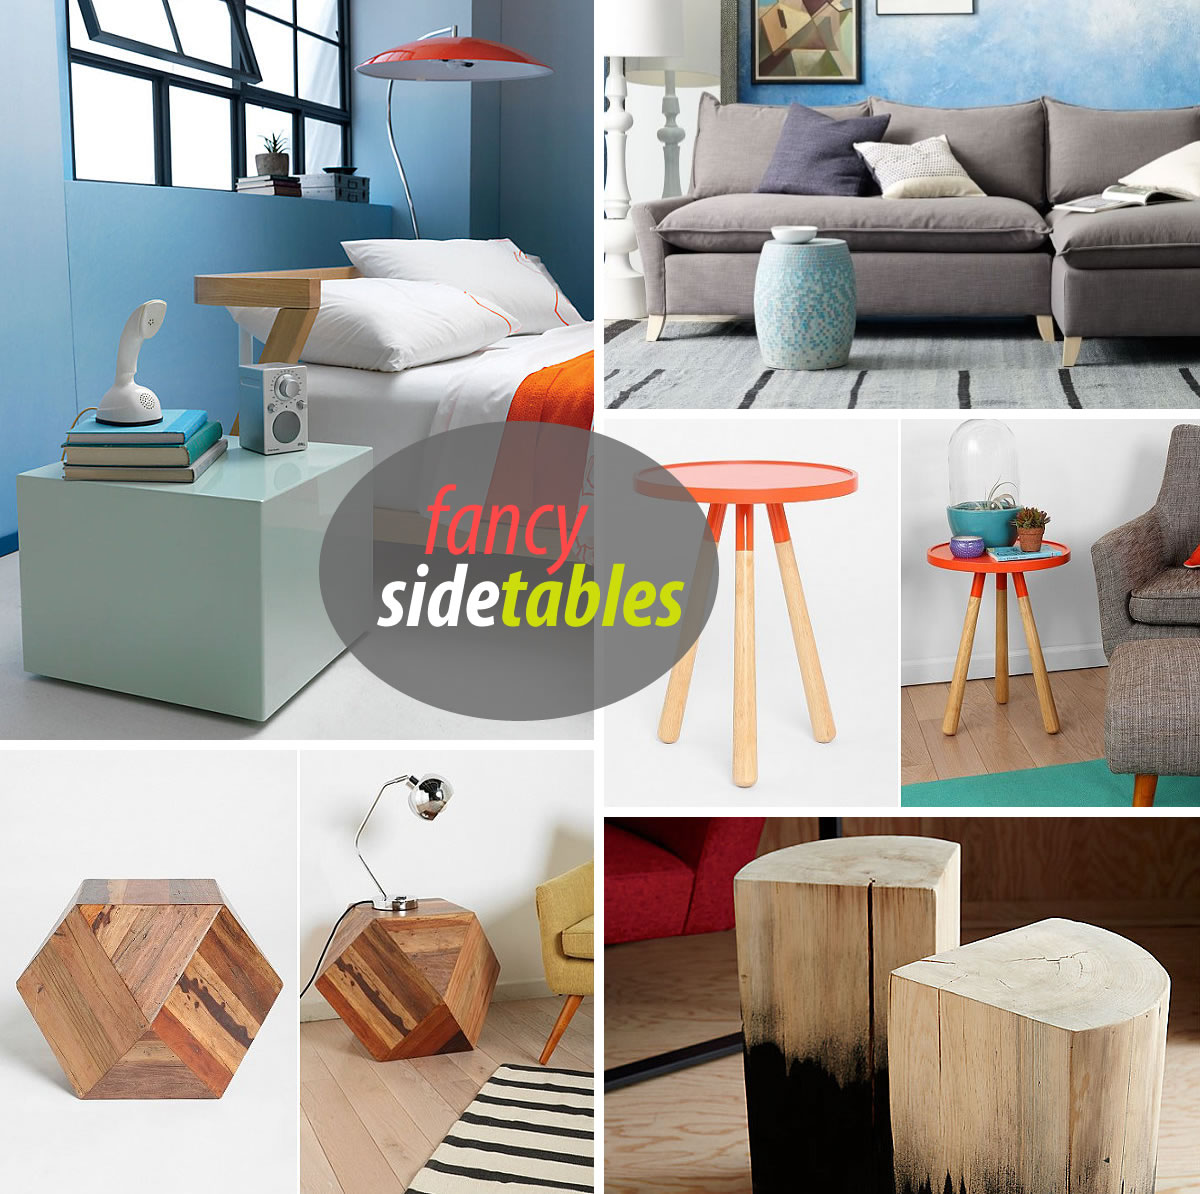 fancy sidetables The 12 Best Side Tables for Spring